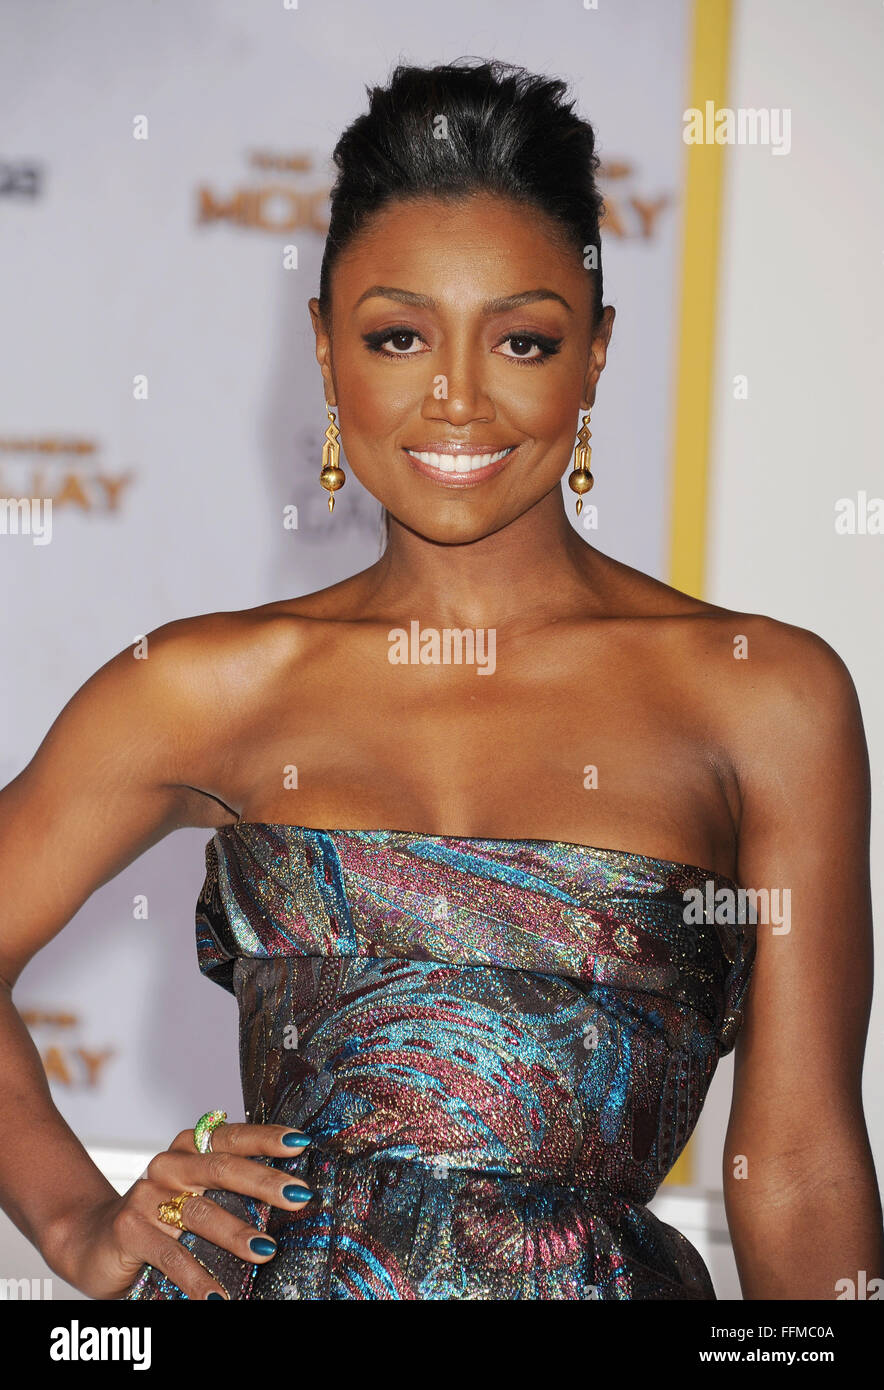 Actress Patina Miller arrives at the 'The Hunger Games: Mockingjay - Part 1' - Los Angeles Premiere at Nokia - Stock Image